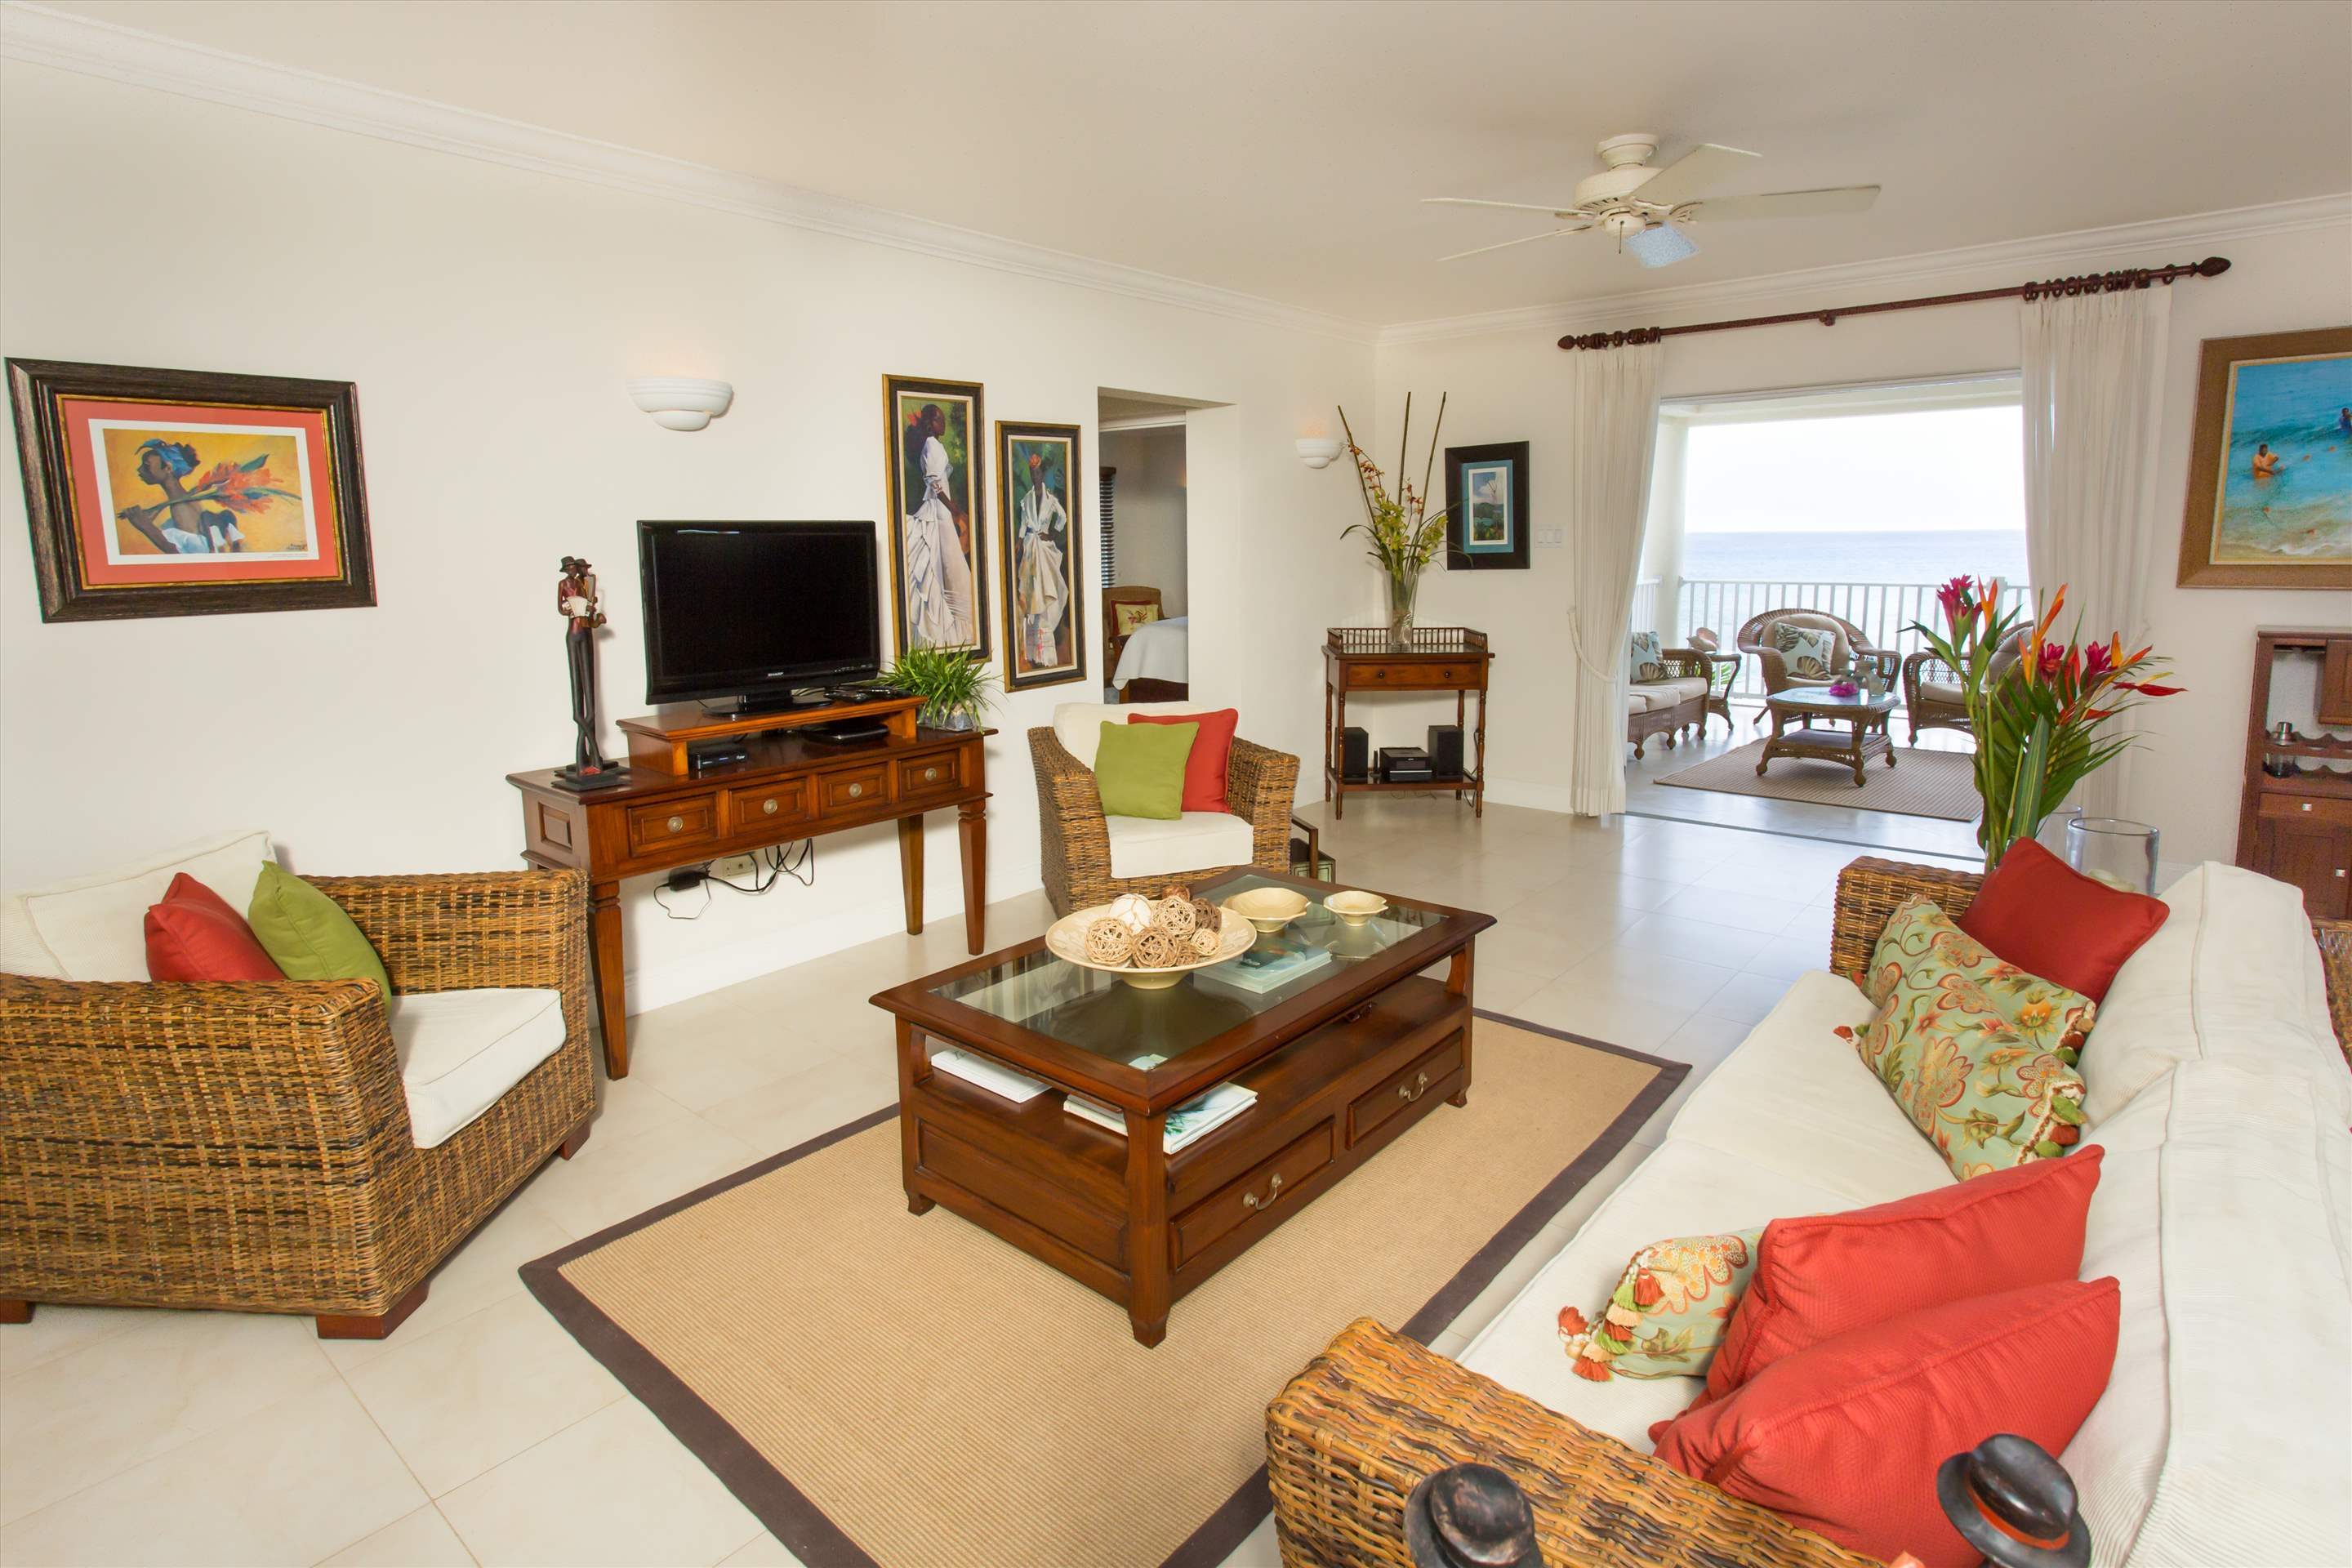 Sandy Hook 21, 2 bedroom, 2 bedroom villa in St. Lawrence Gap & South Coast, Barbados Photo #5